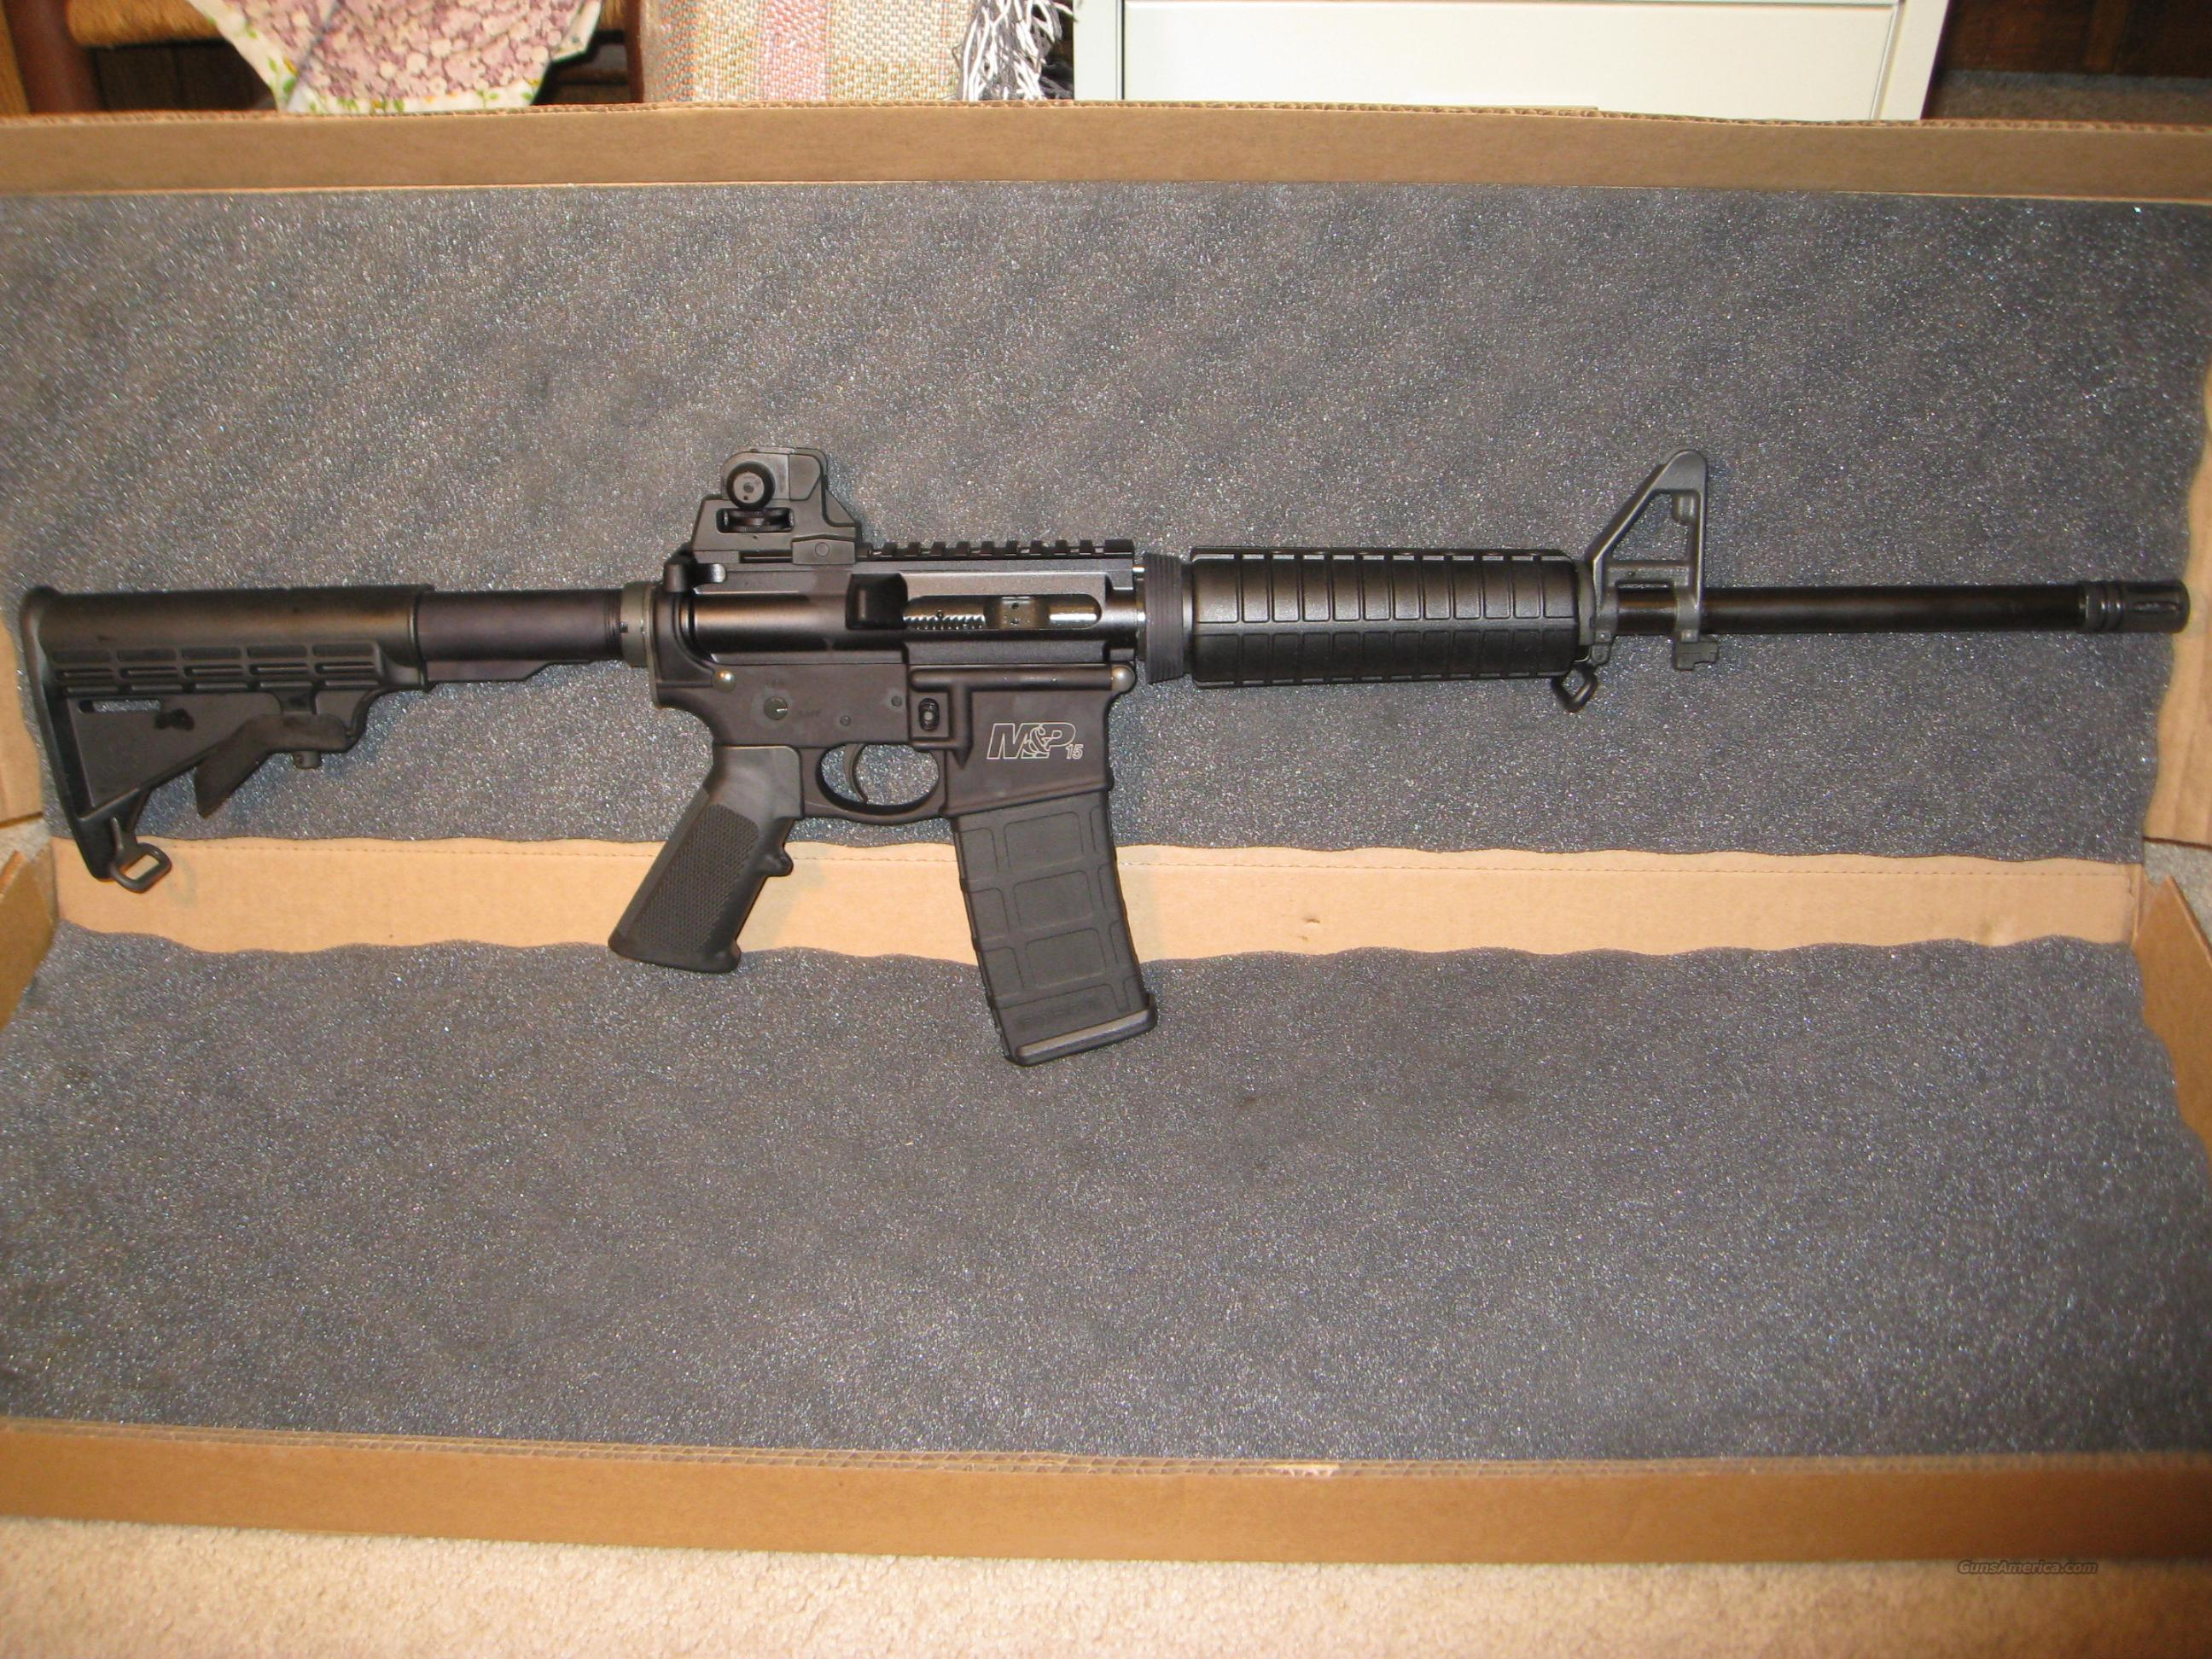 Smith & Wesson M&P AR-15 Type Rifle .223/5.56  Guns > Rifles > AR-15 Rifles - Small Manufacturers > Complete Rifle